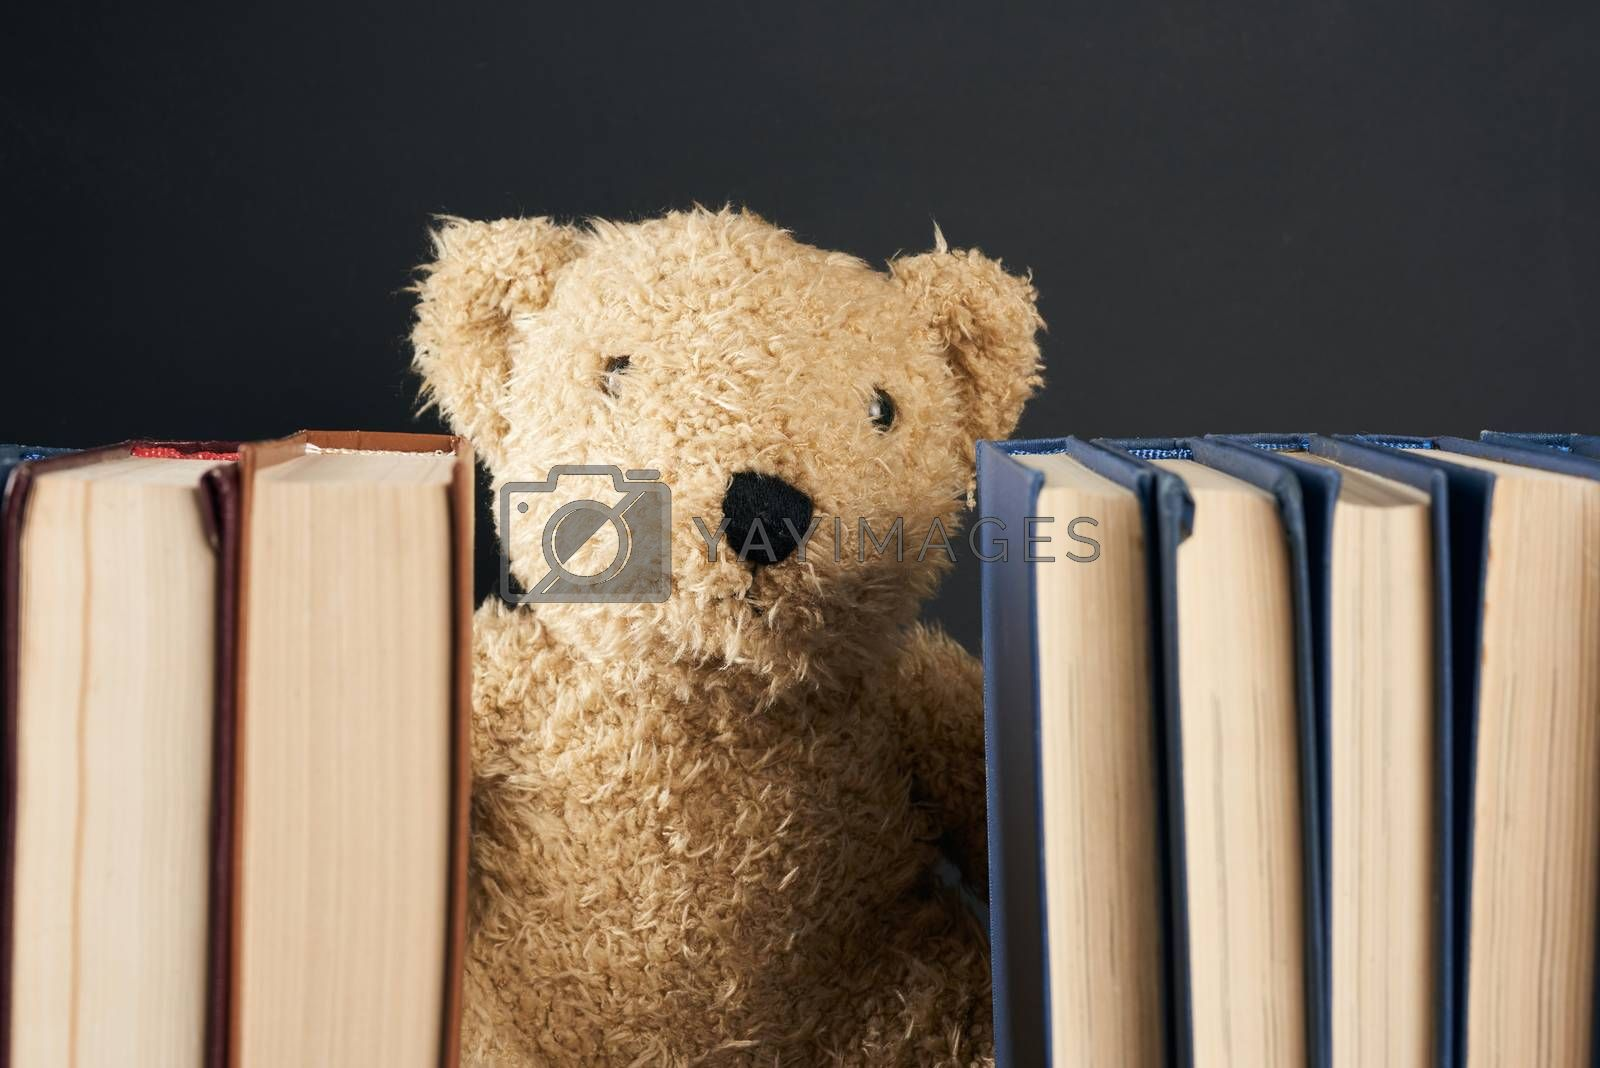 teddy bear peeking out from behind a stack of books, black background, back to school, close up